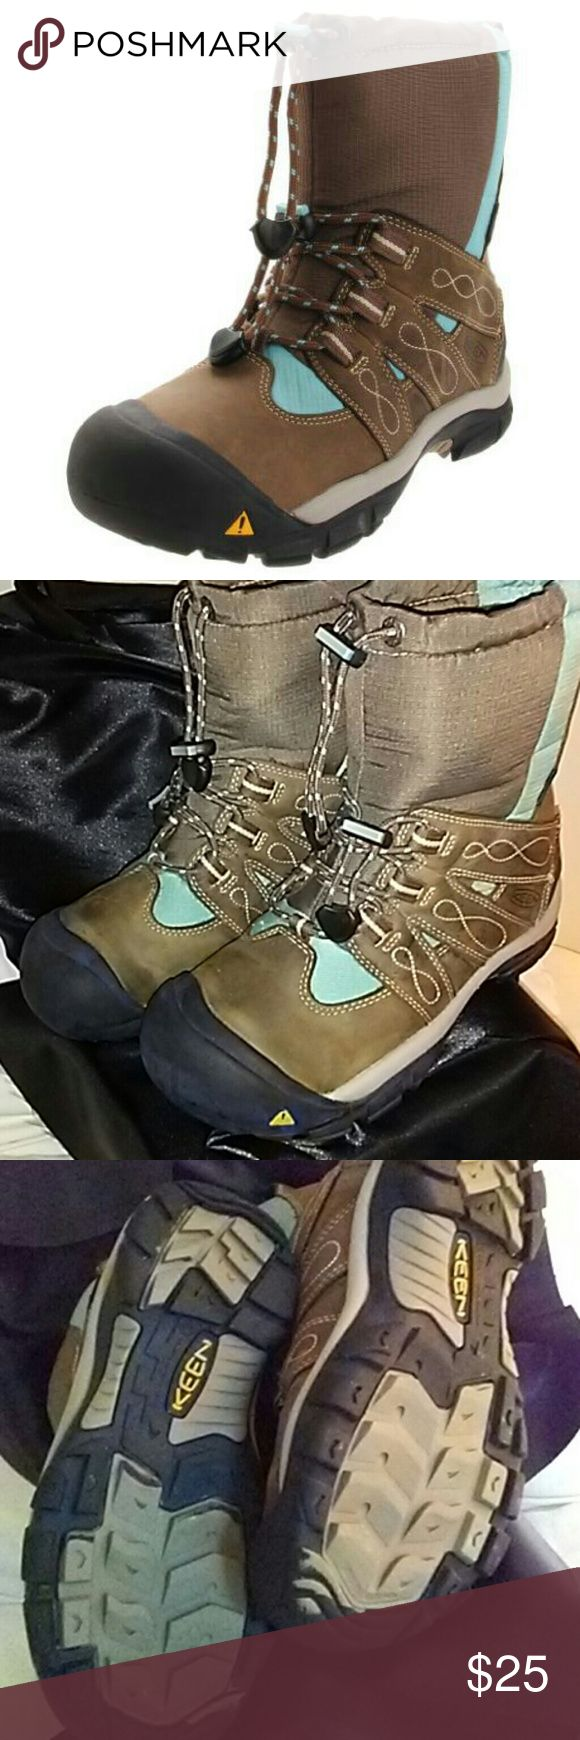 Keen Keen Brixen Waterproof Winter Boot For Women Wherever you roam, may your feet always be cozy and warm! Just keep the heavy-duty yet ultra-comfy Brixen by the door, and you're guaranteed toasty travels Keen Shoes Winter & Rain Boots